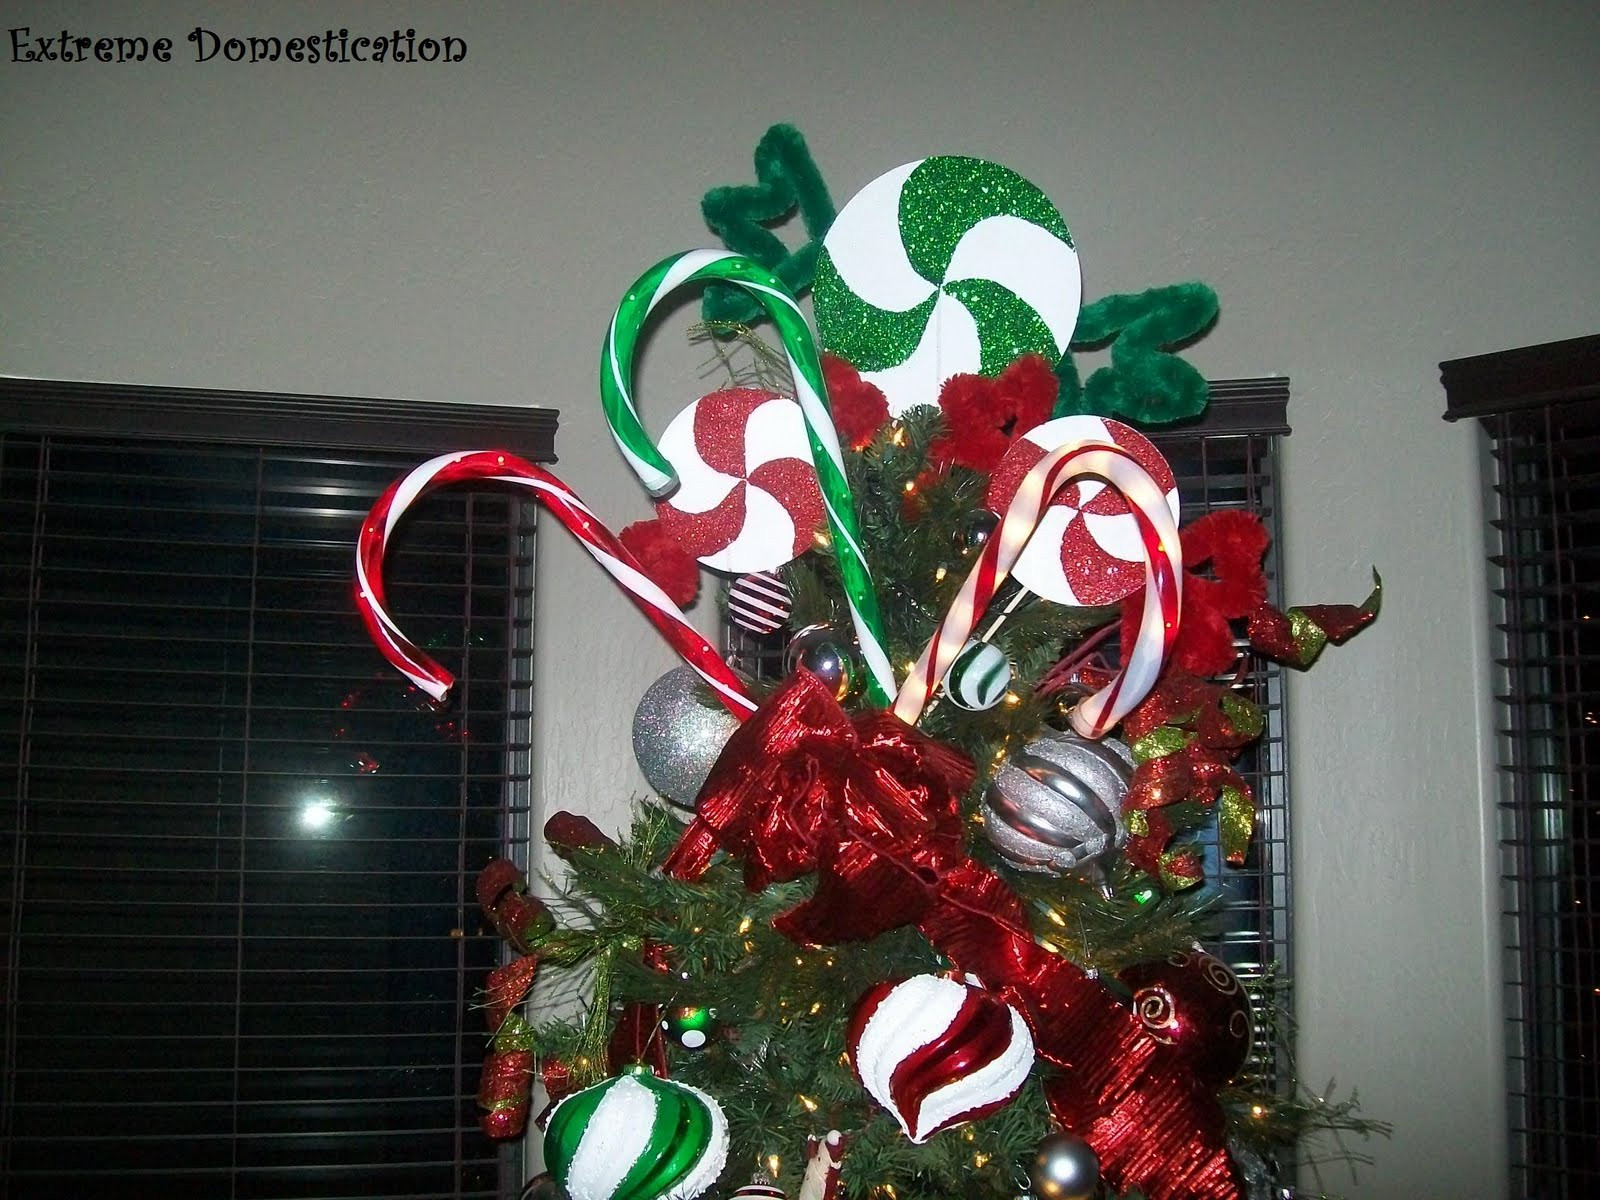 Candy Christmas Tree Topper  Extreme Domestication Peppermint Tree Topper